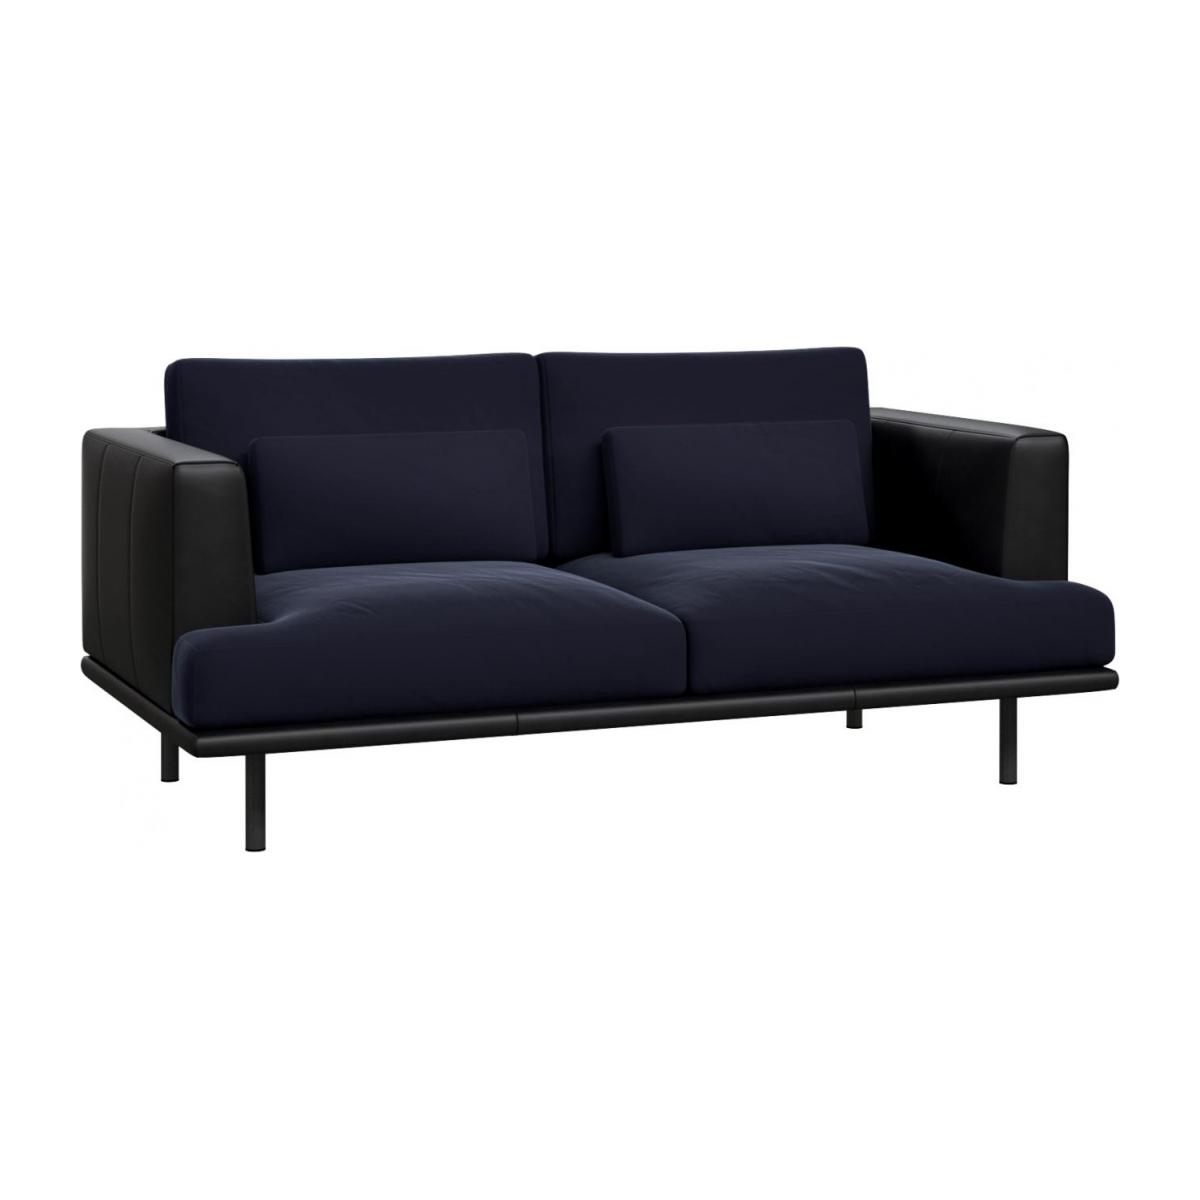 2 seater sofa in Super Velvet fabric, dark blue with base and armrests in black leather n°1